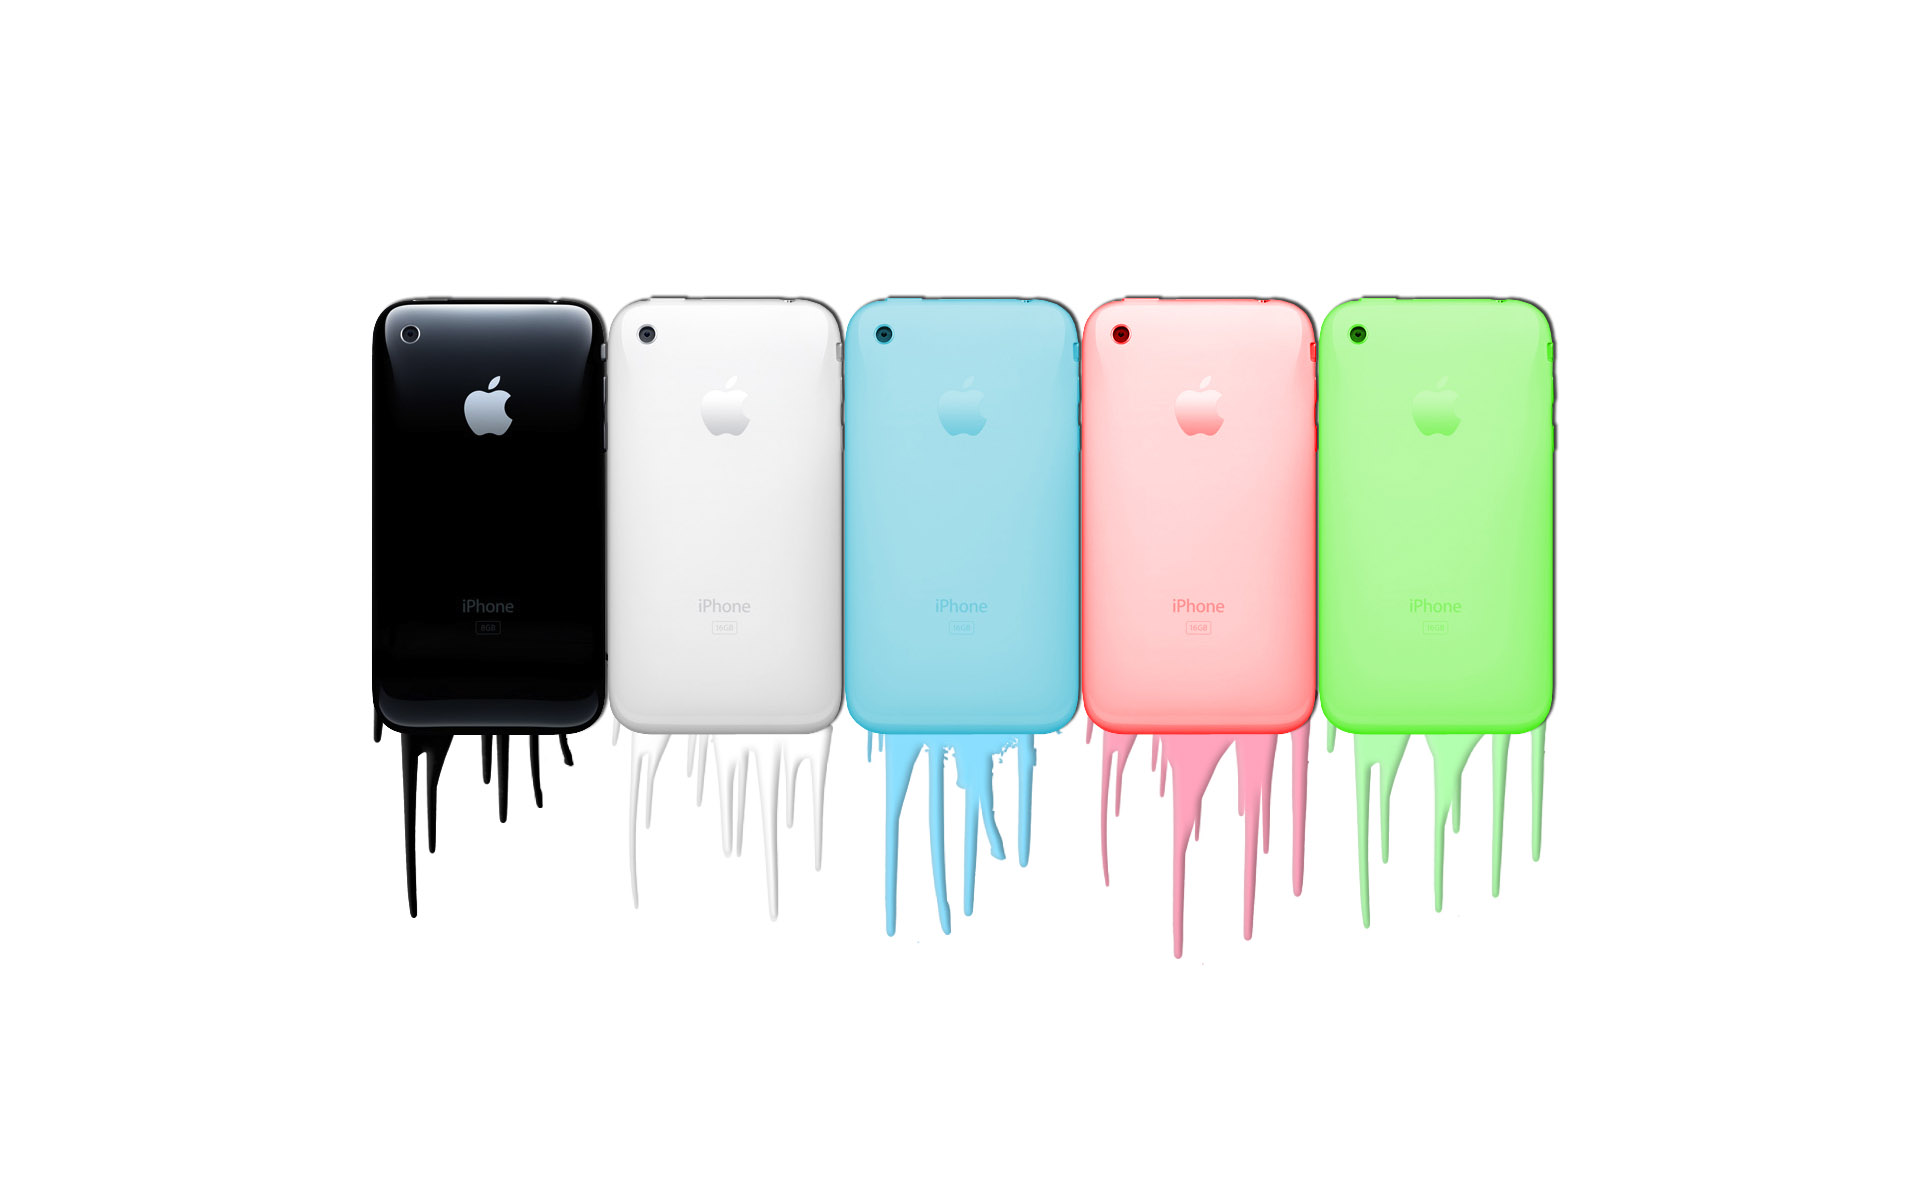 Apple iPhones in Colors